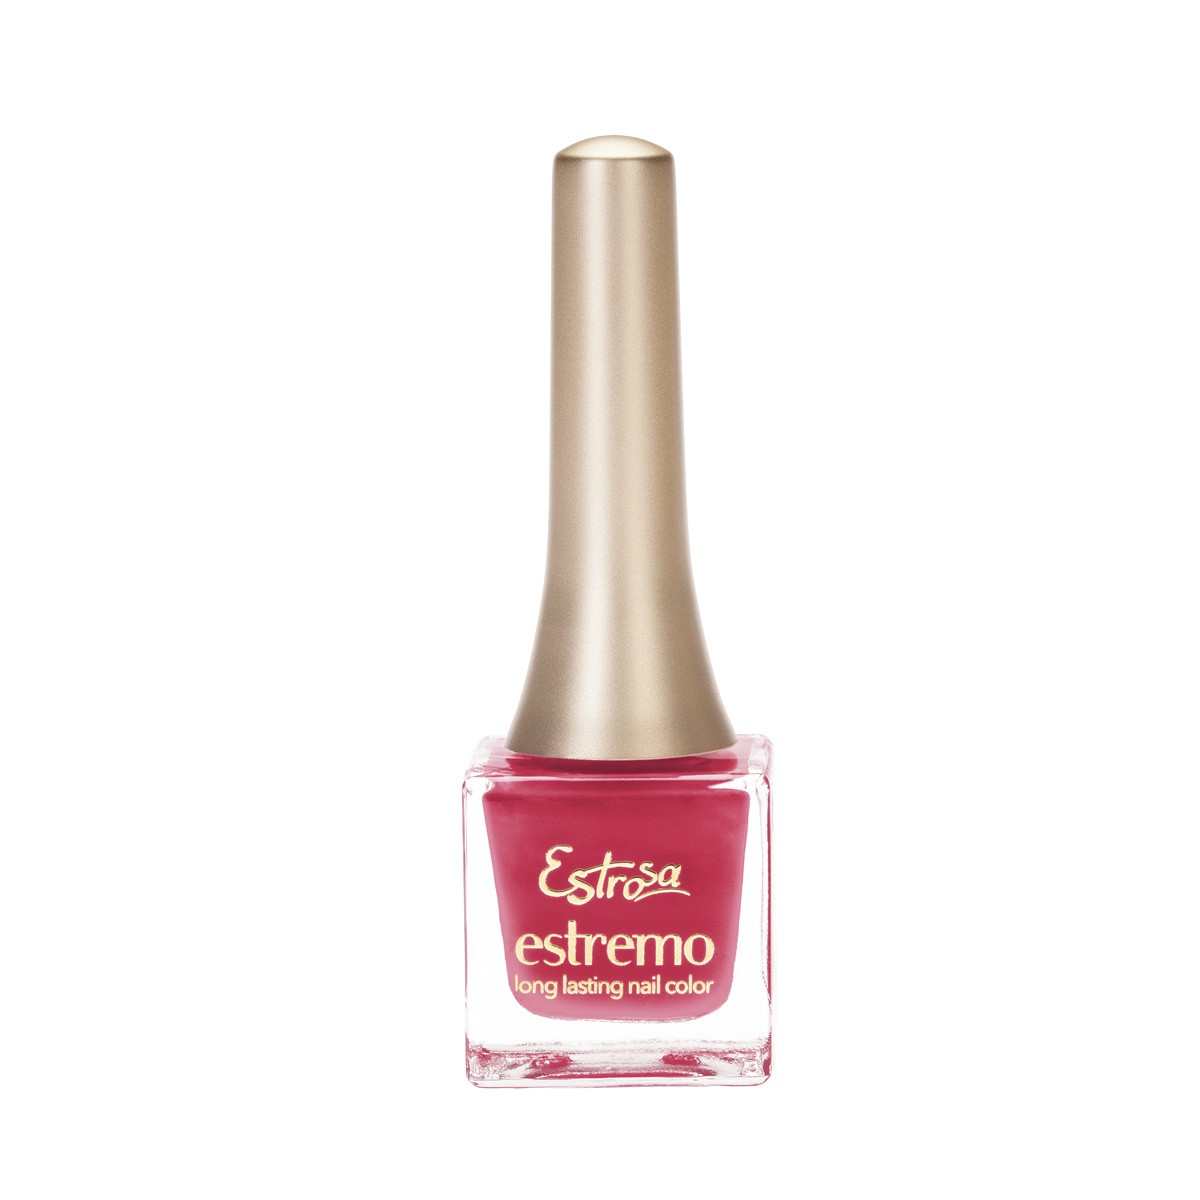 SMALTO LUNGA DURATA ESTREMO - SEDUCTION 12ML